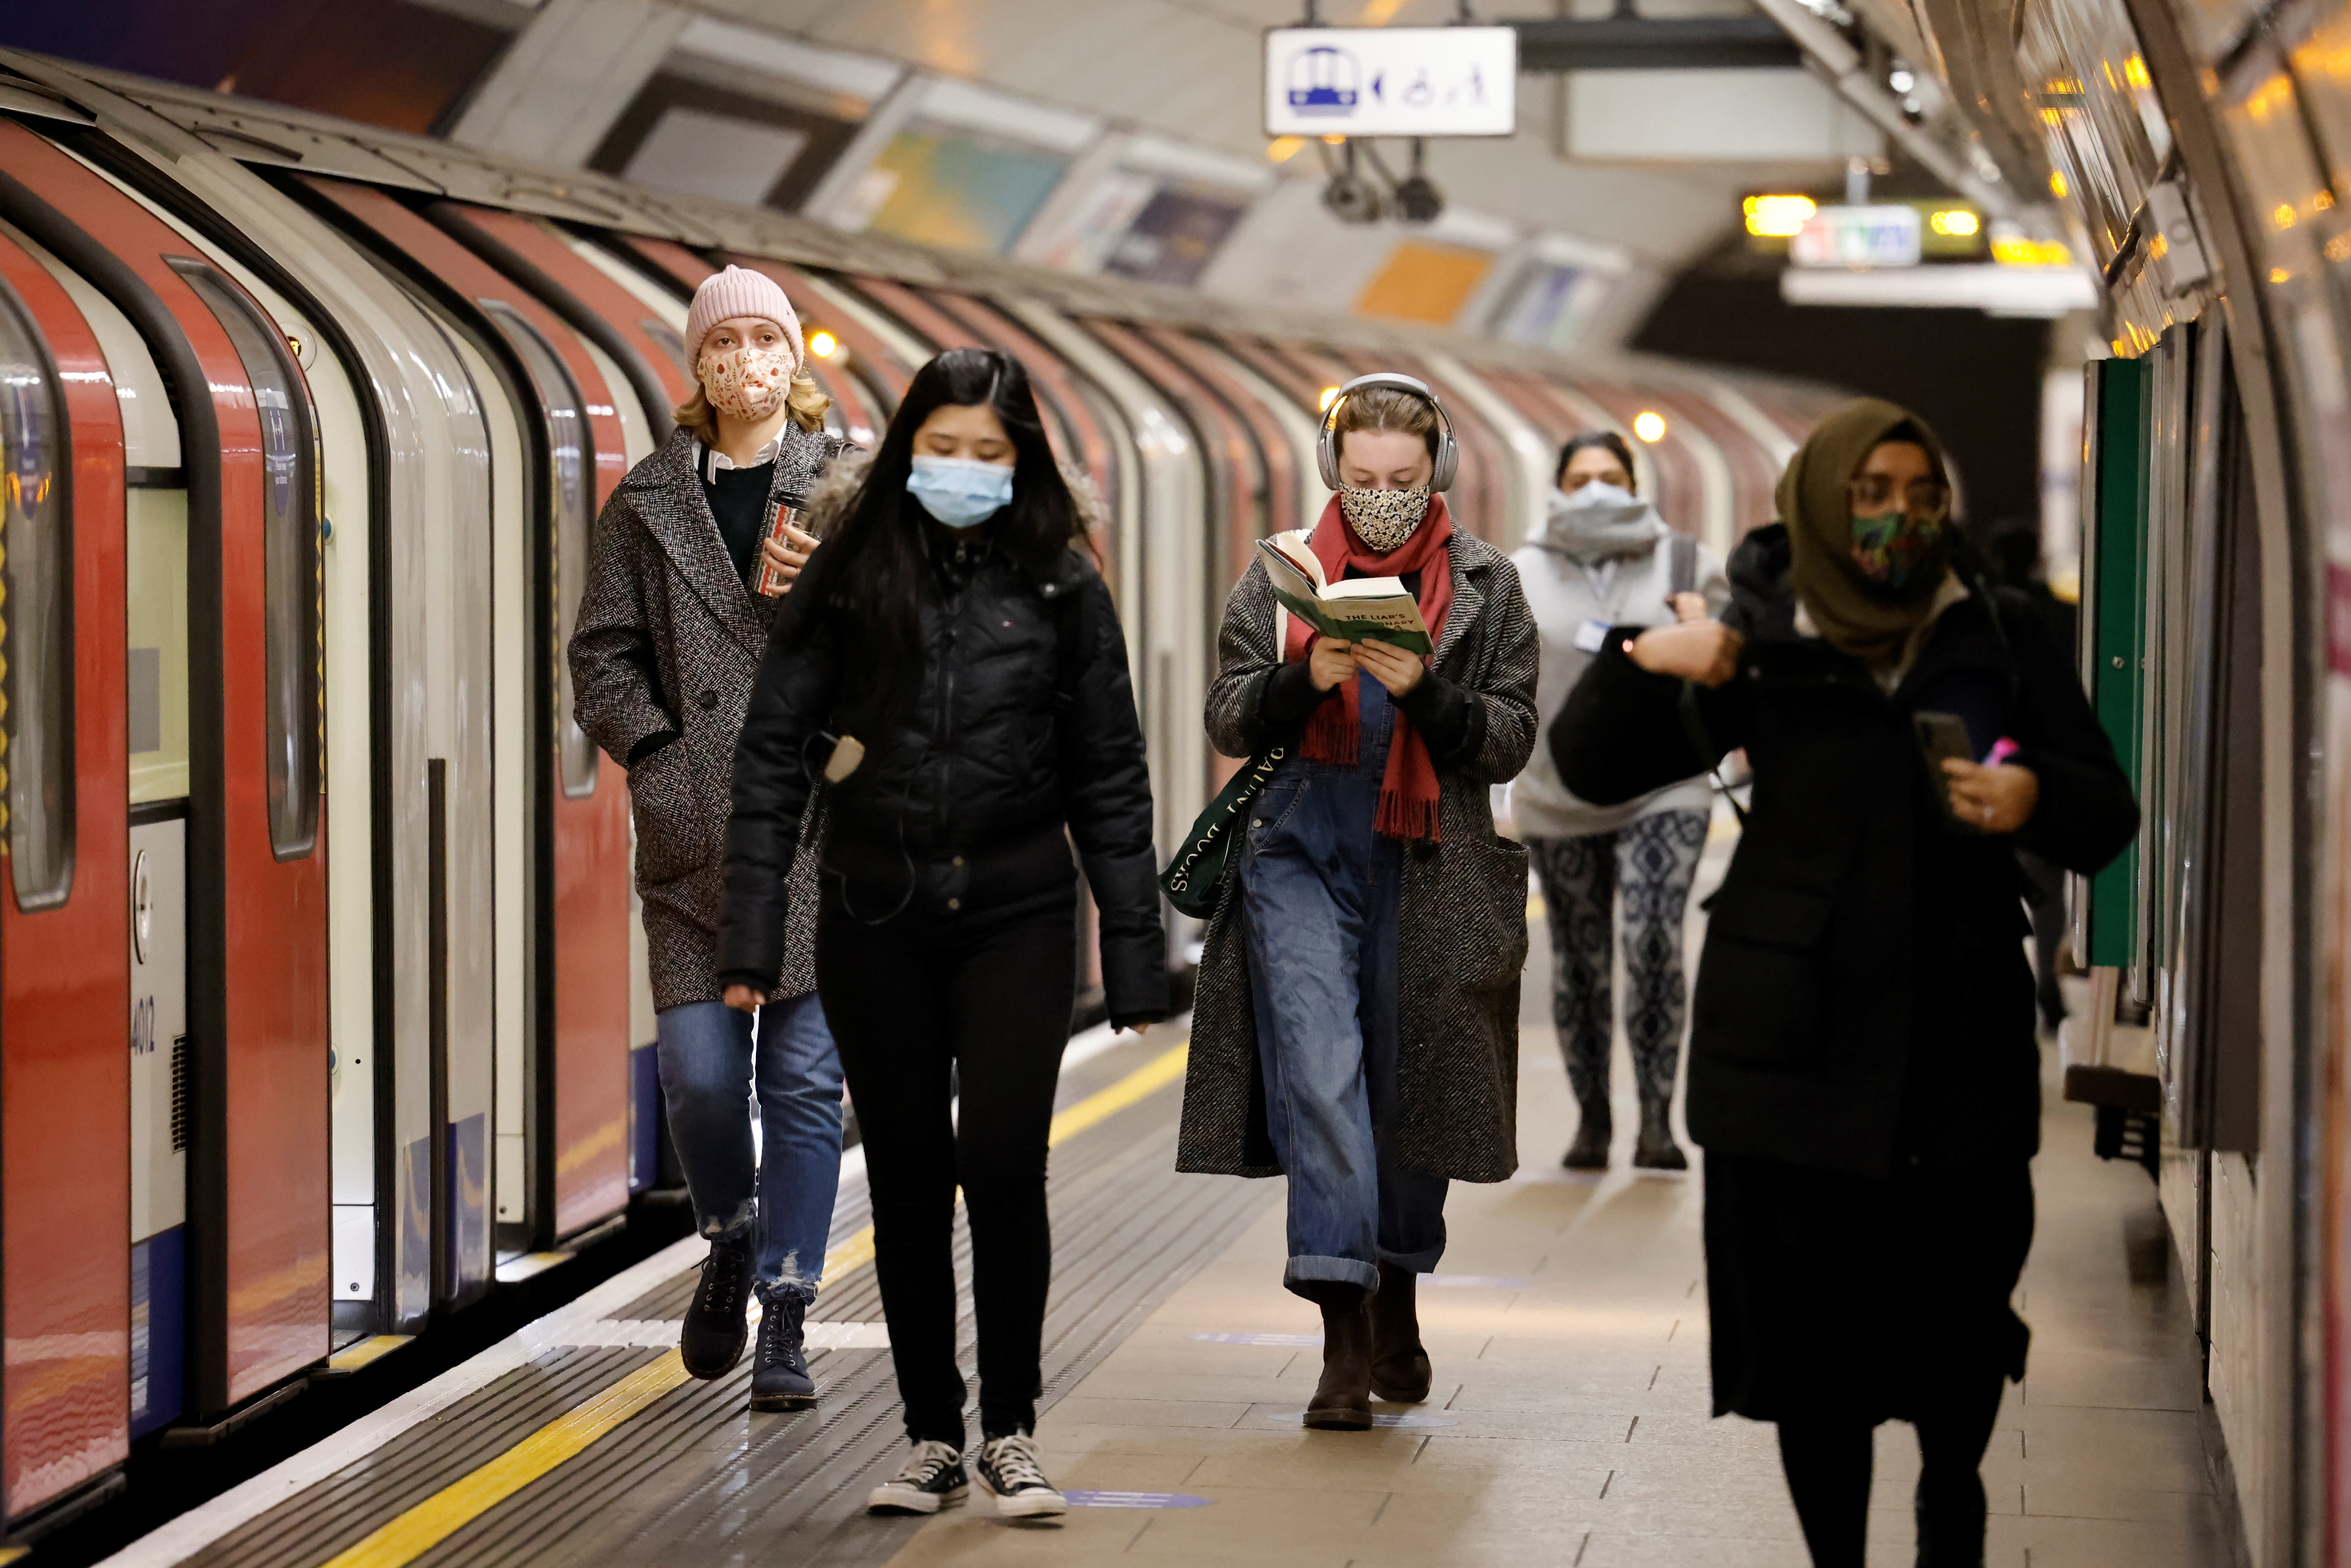 Face masks may positively affect mental wellbeing, new research suggests